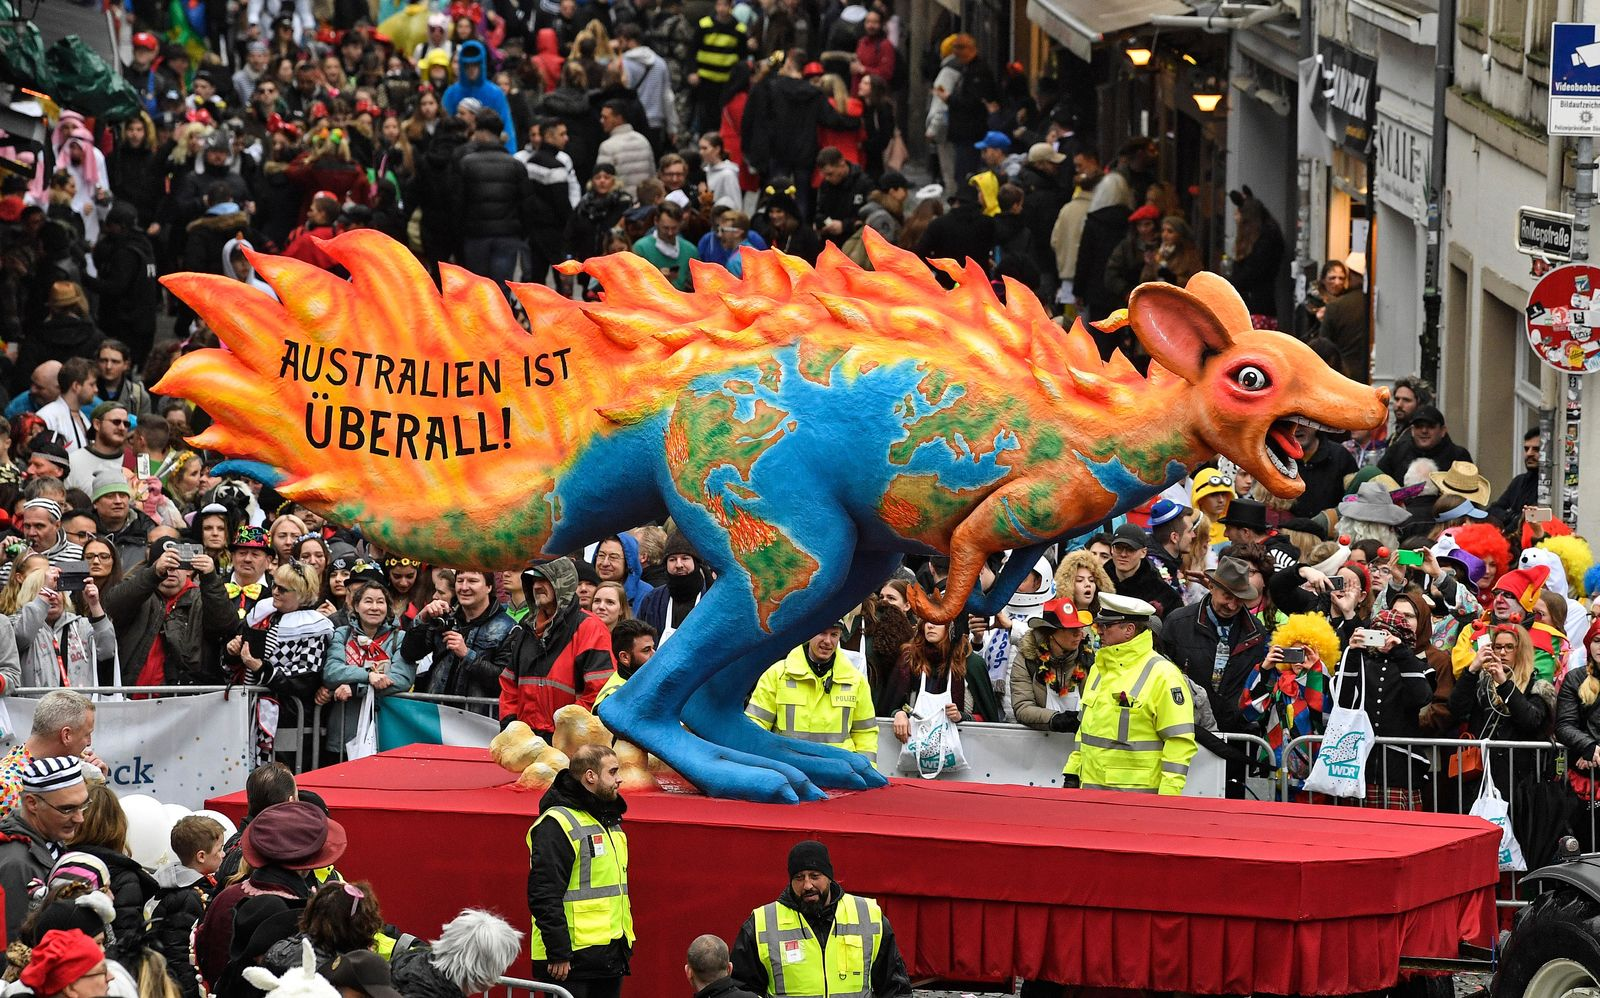 A carnival float depicts a burning kangaroo, reading 'Australia is everywhere' during the traditional carnival parade in Duesseldorf, Germany, on Monday, Feb. 24, 2020. The foolish street spectacles in the carnival centers of Duesseldorf, Mainz and Cologne, watched by hundreds of thousands of people, are the highlights in Germany's carnival season on Rosemonday. (AP Photo/Martin Meissner)